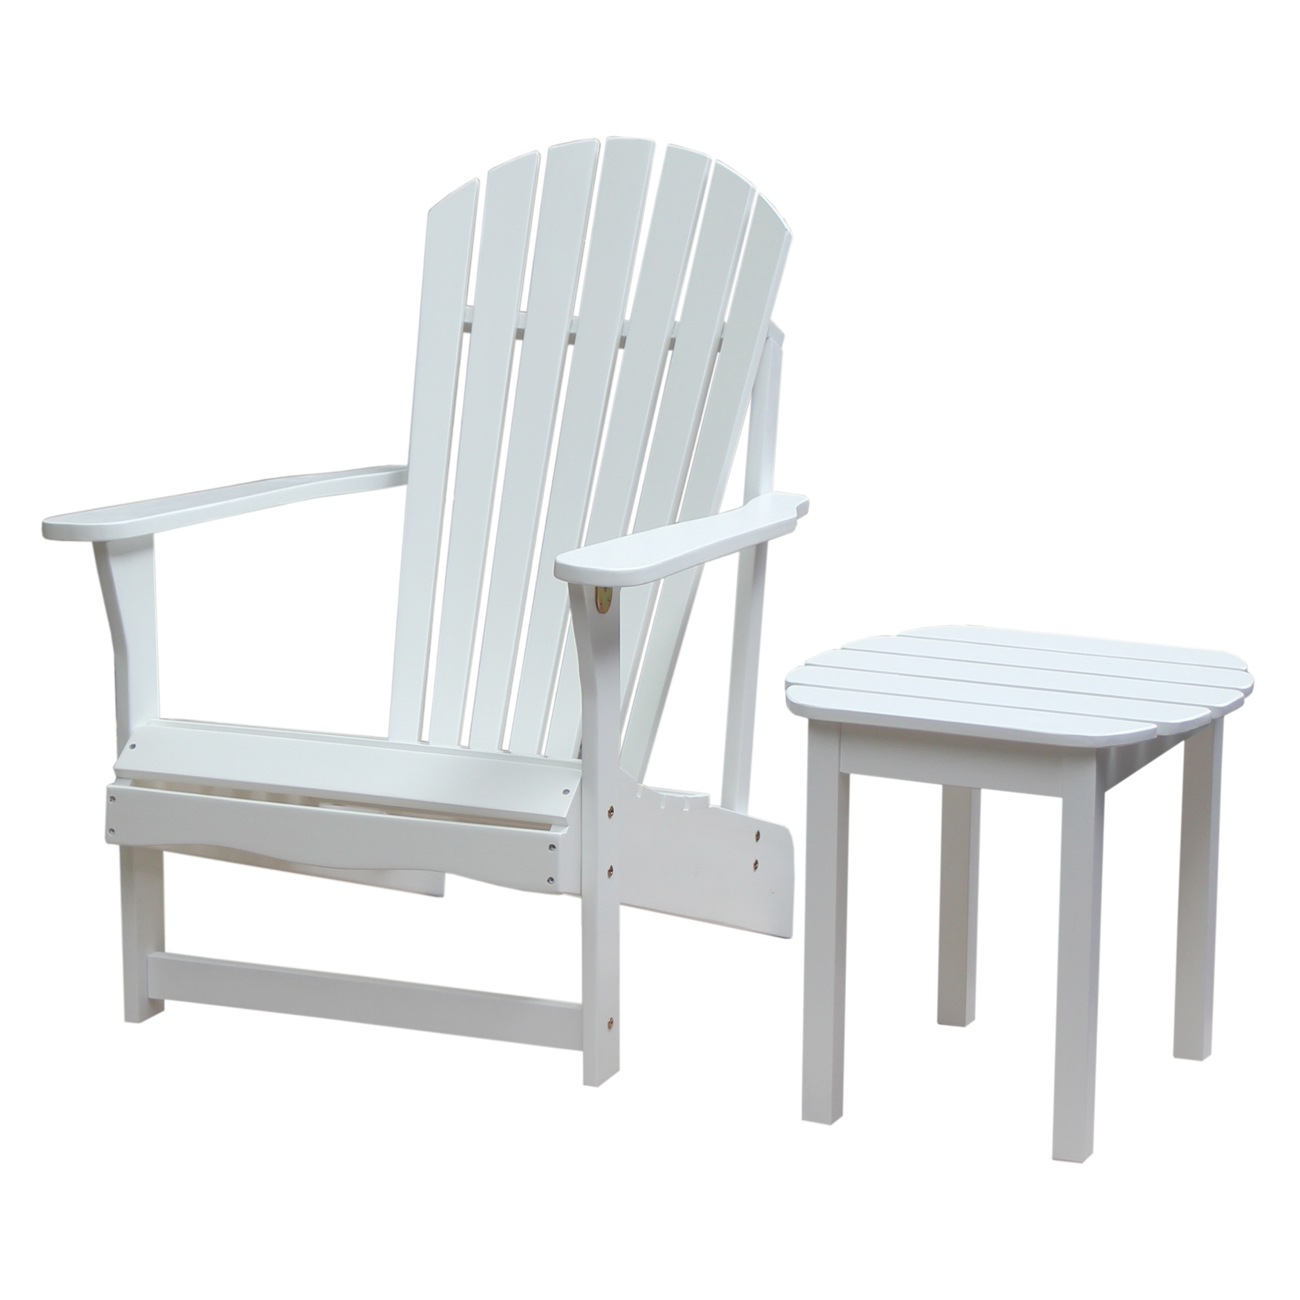 Adirondack Chair and Side Table in White